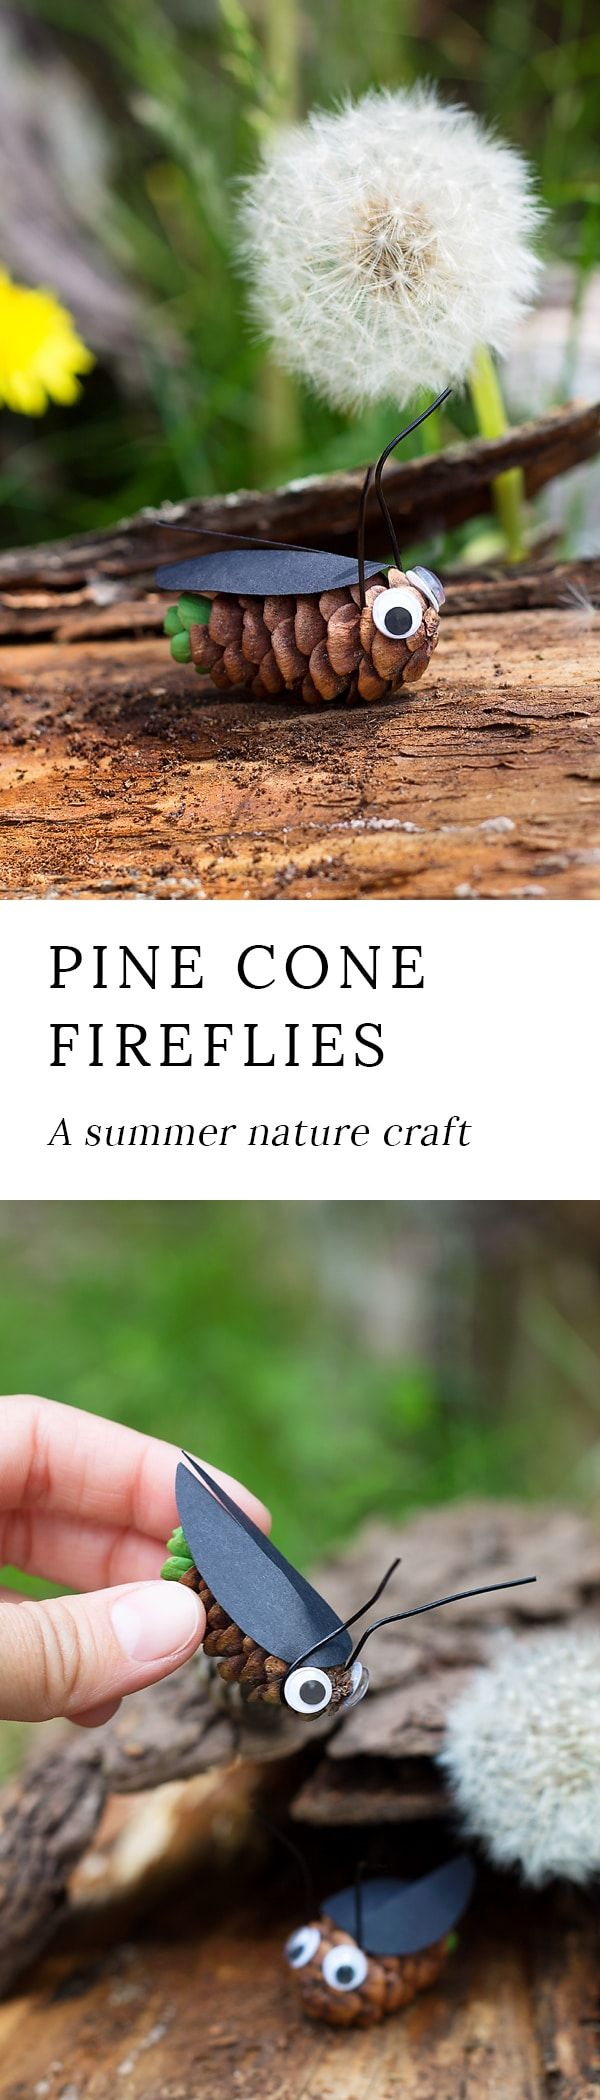 Pine Cone Fireflies: A Summer Nature Craft for Kids via @https://www.pinterest.com/fireflymudpie/